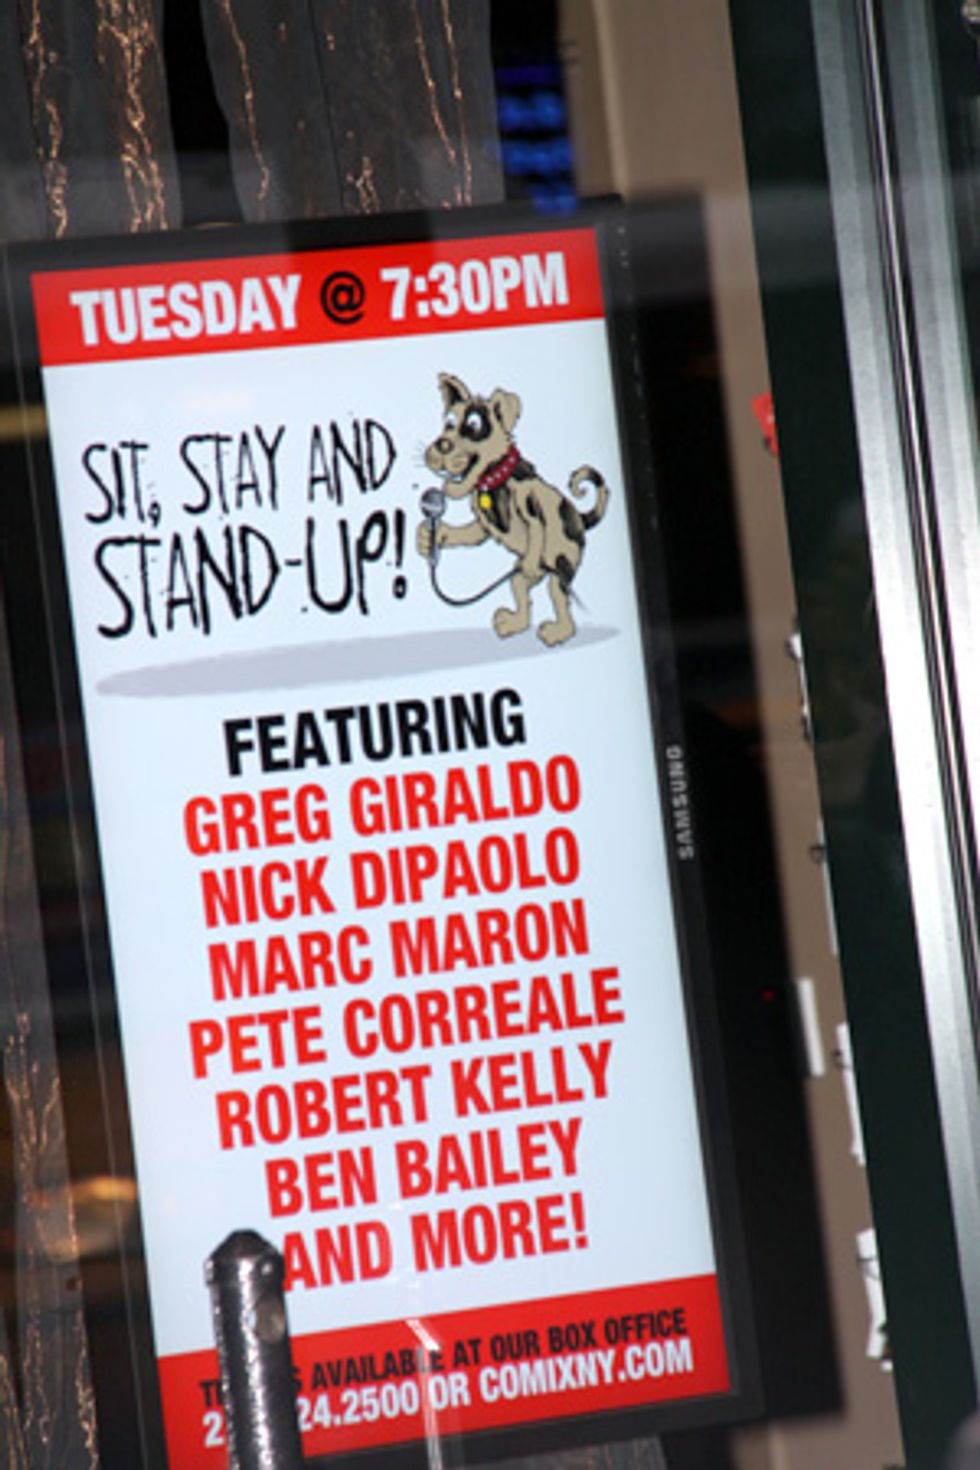 About Last Night... Sit, Stay and Stand-Up at Comix